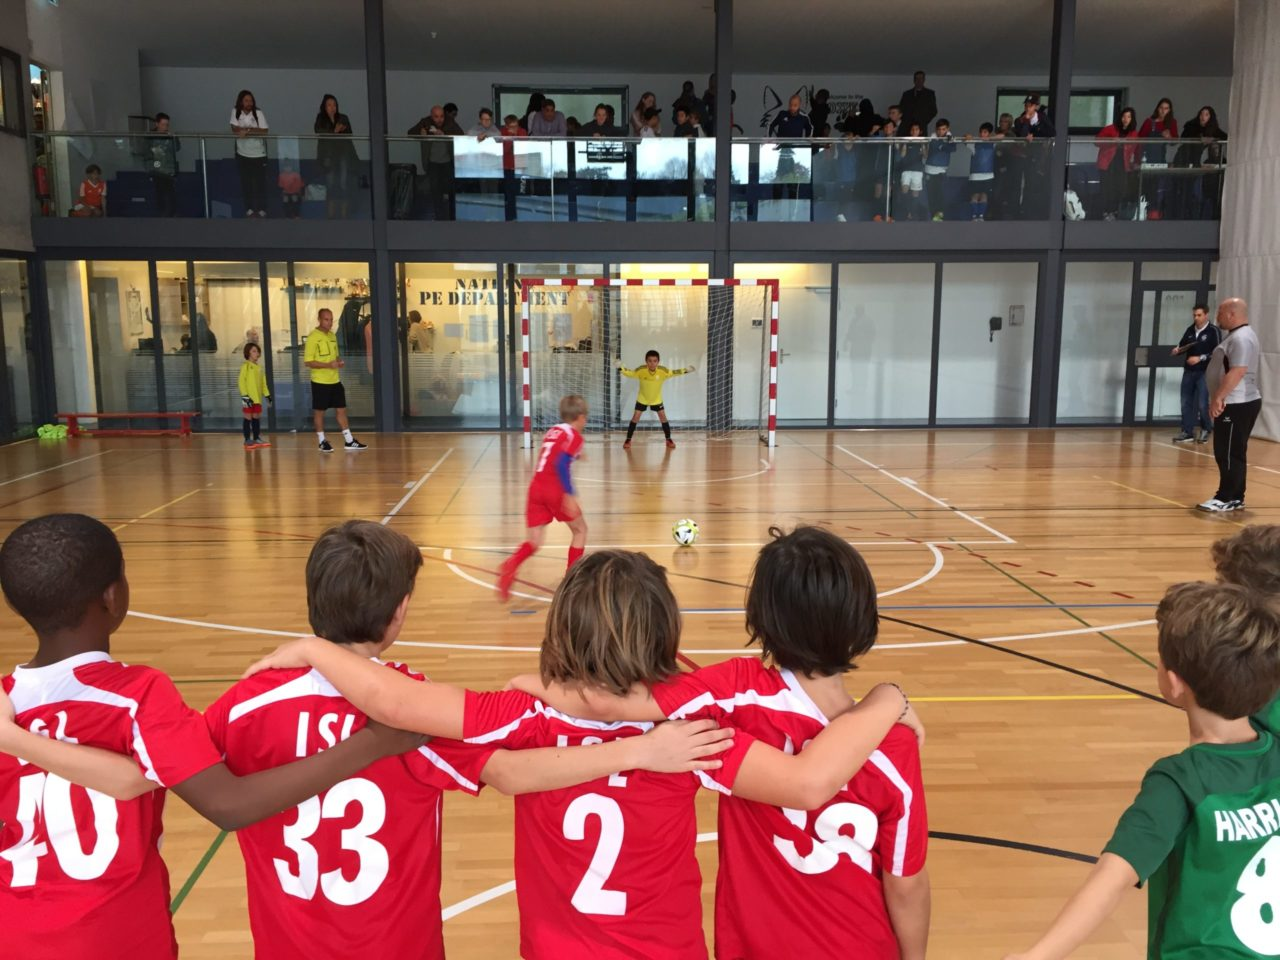 Indoor football game at International School of Lausanne